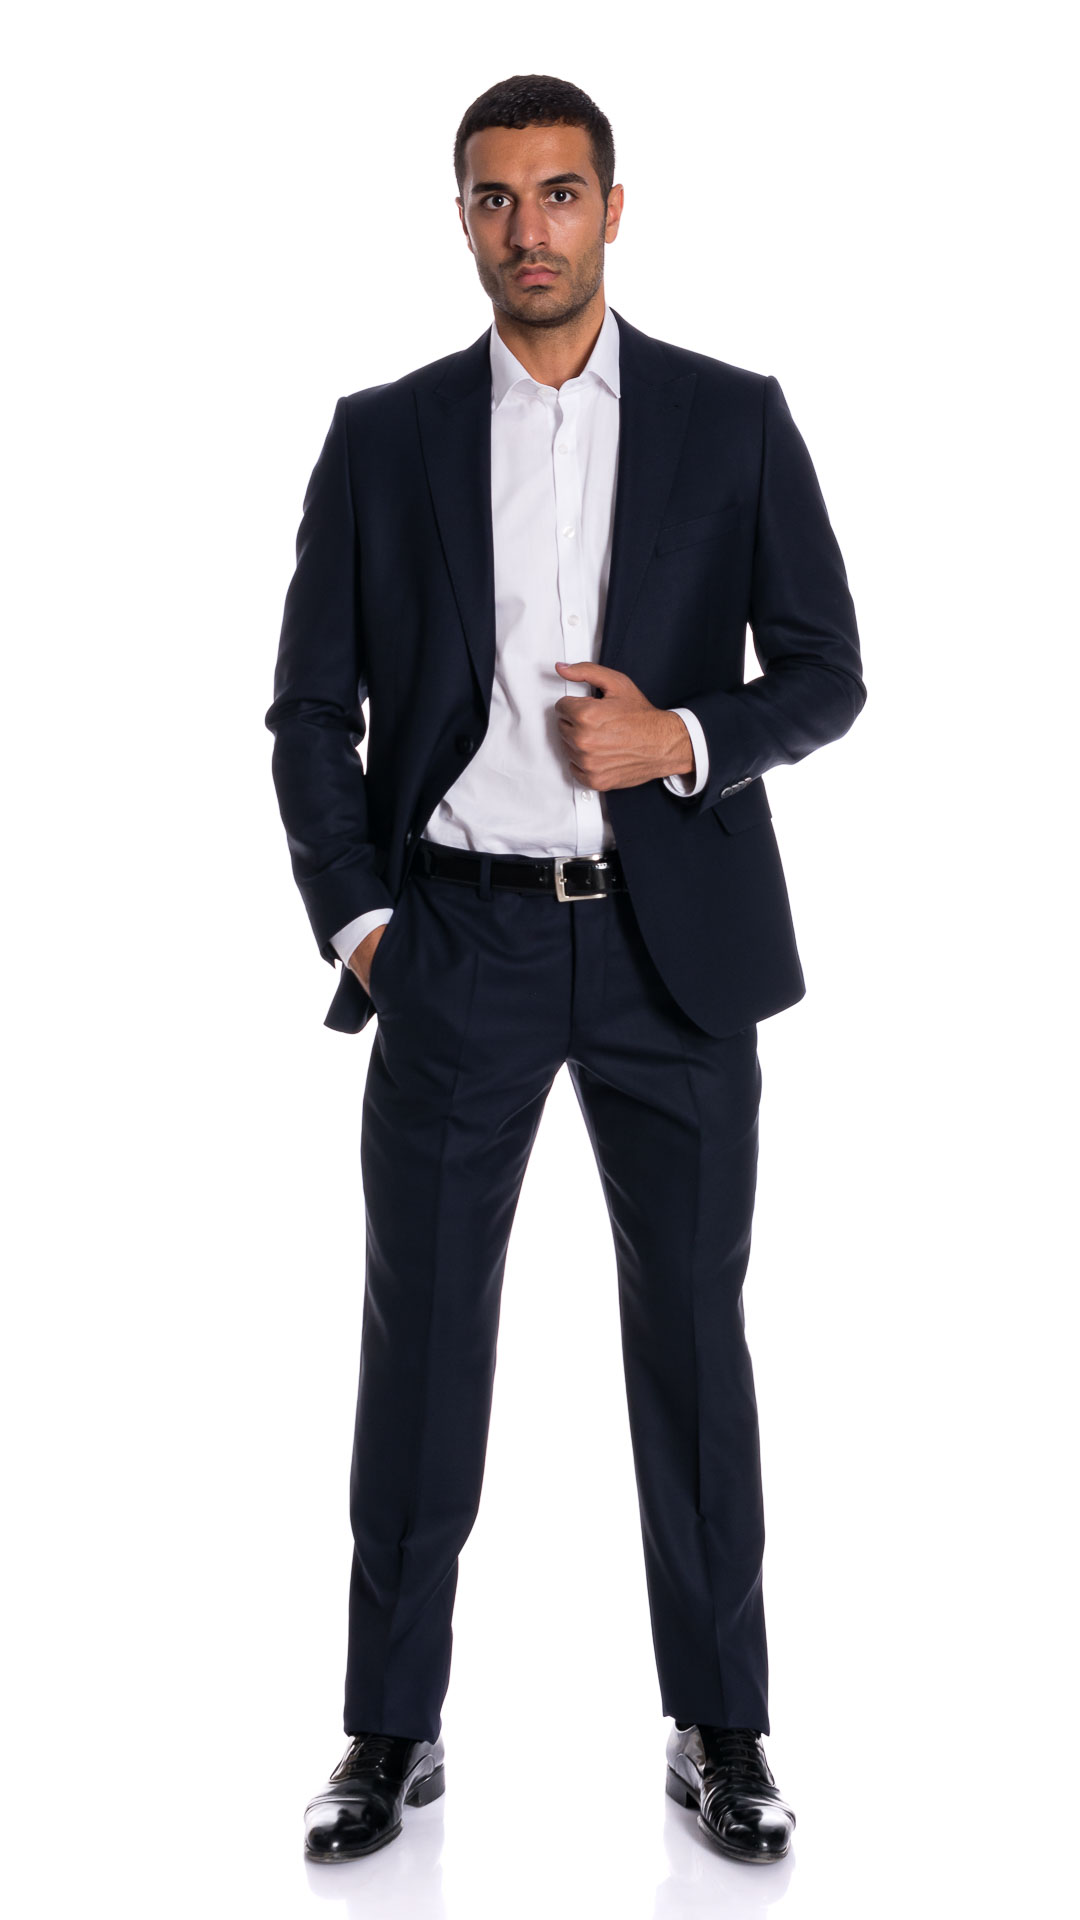 MENS SUIT FOR BUSINESS DAY